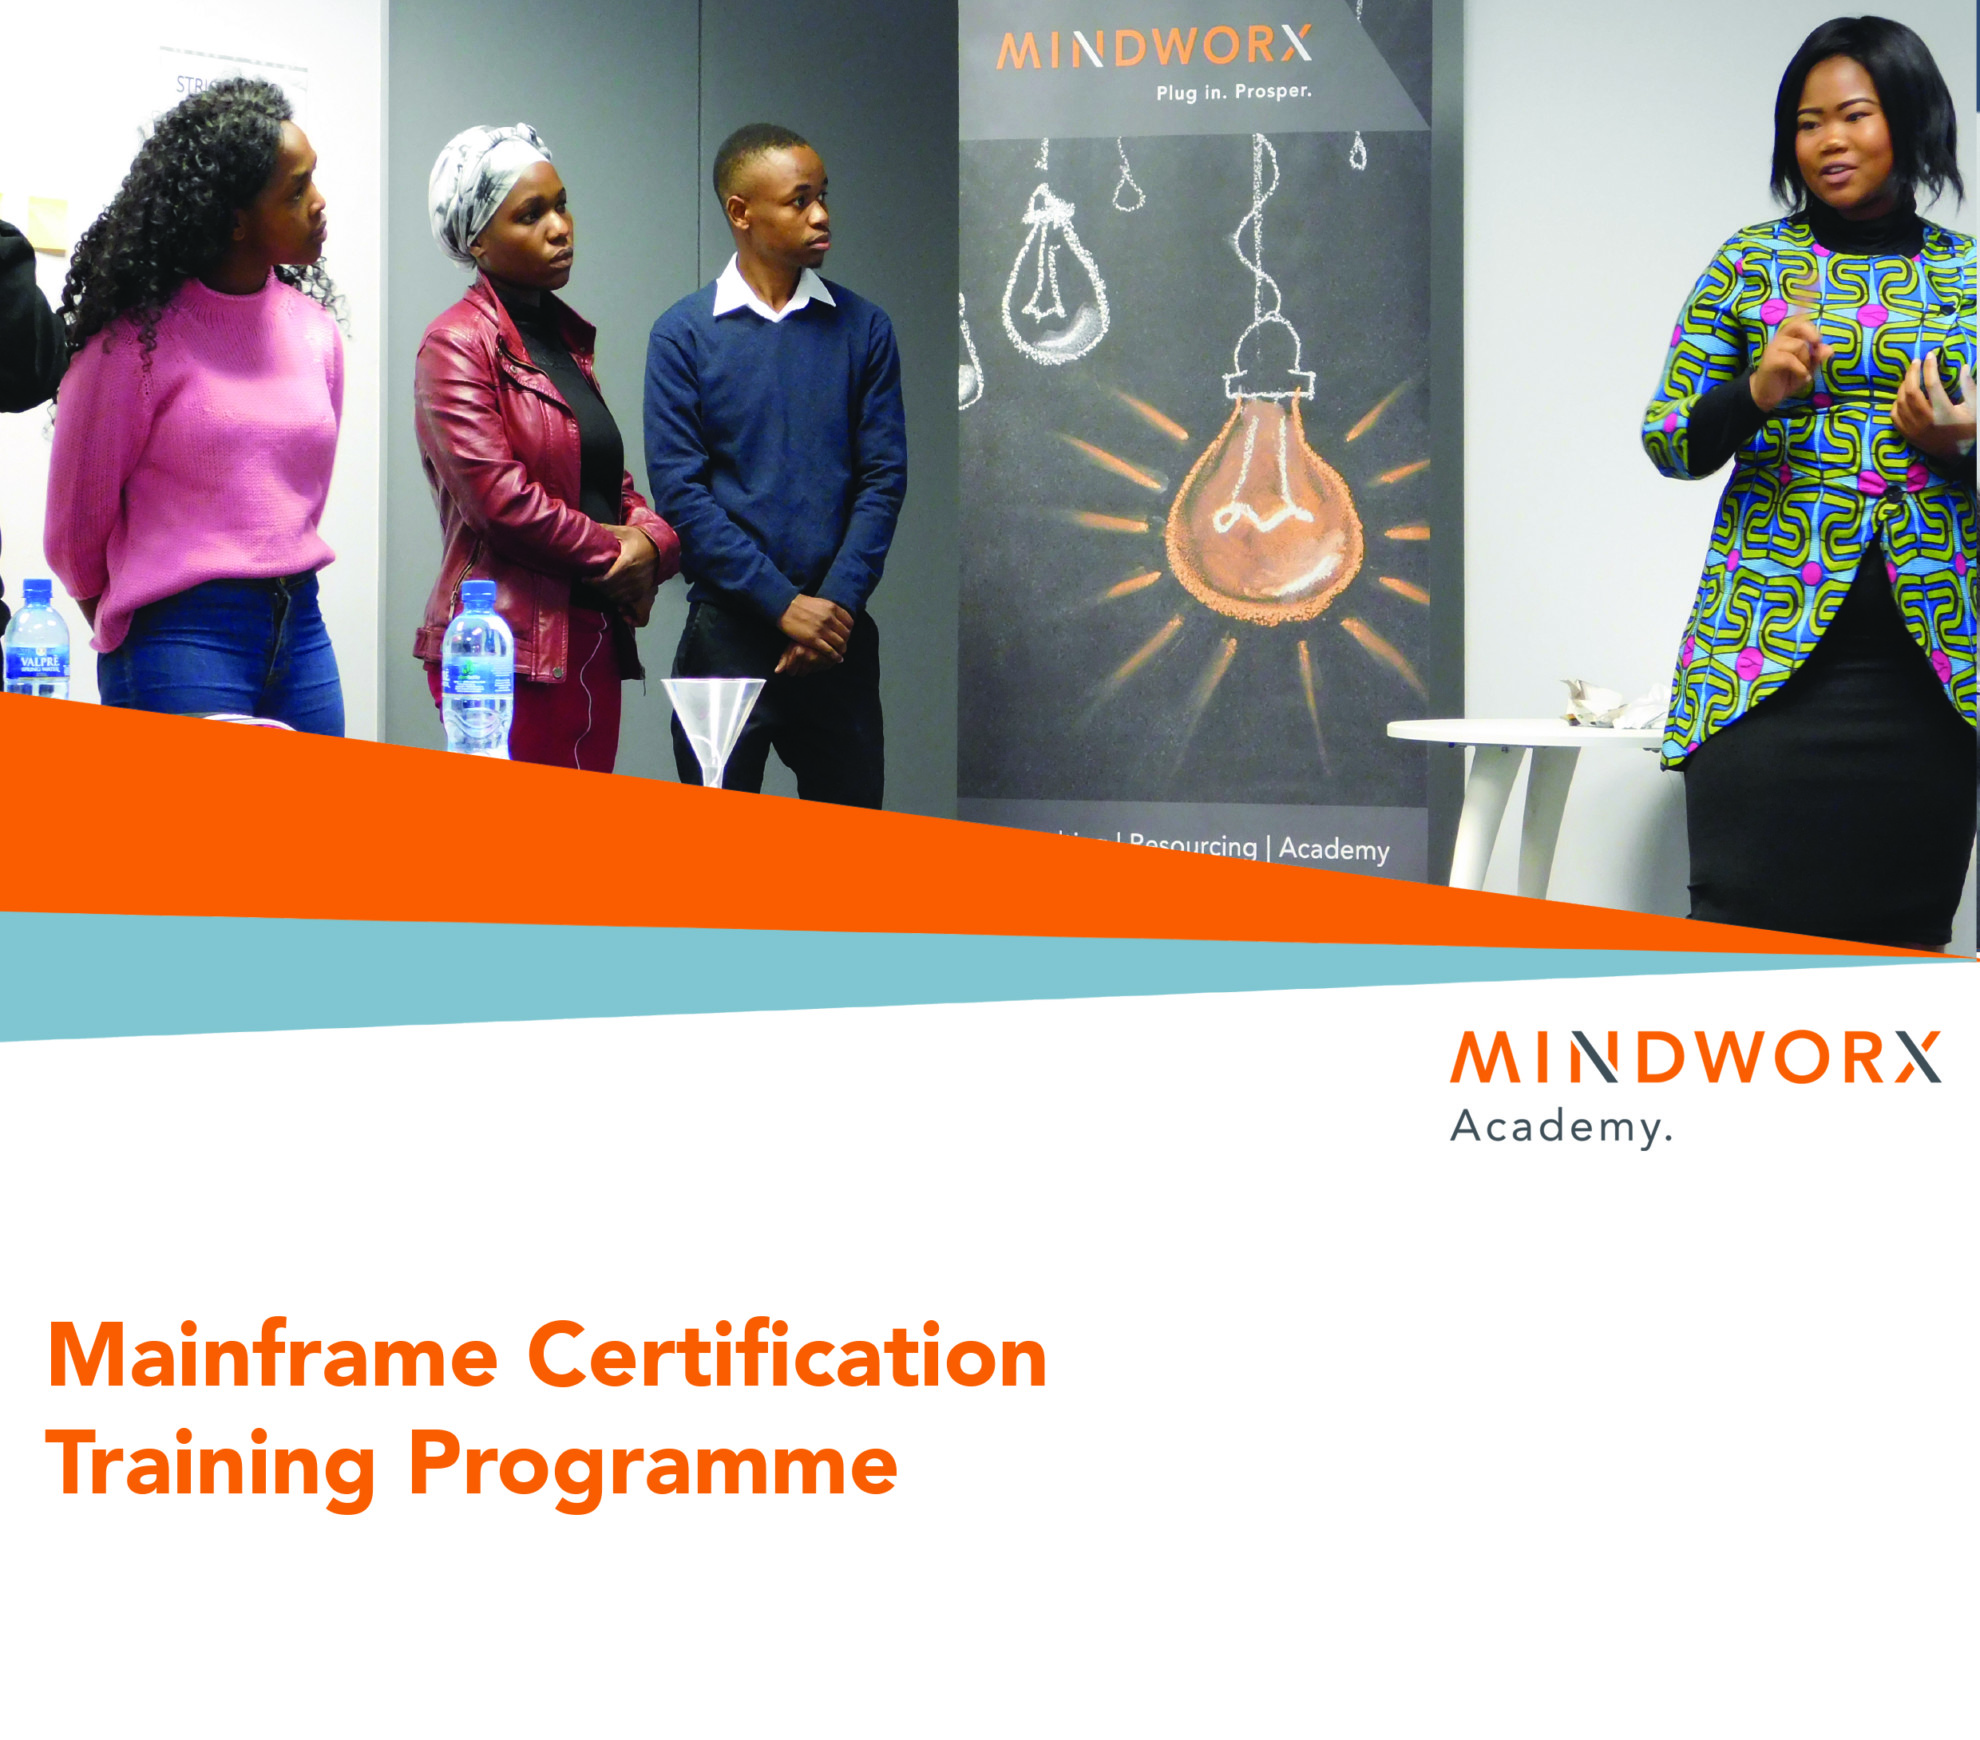 Mainframe Certification Training Programme